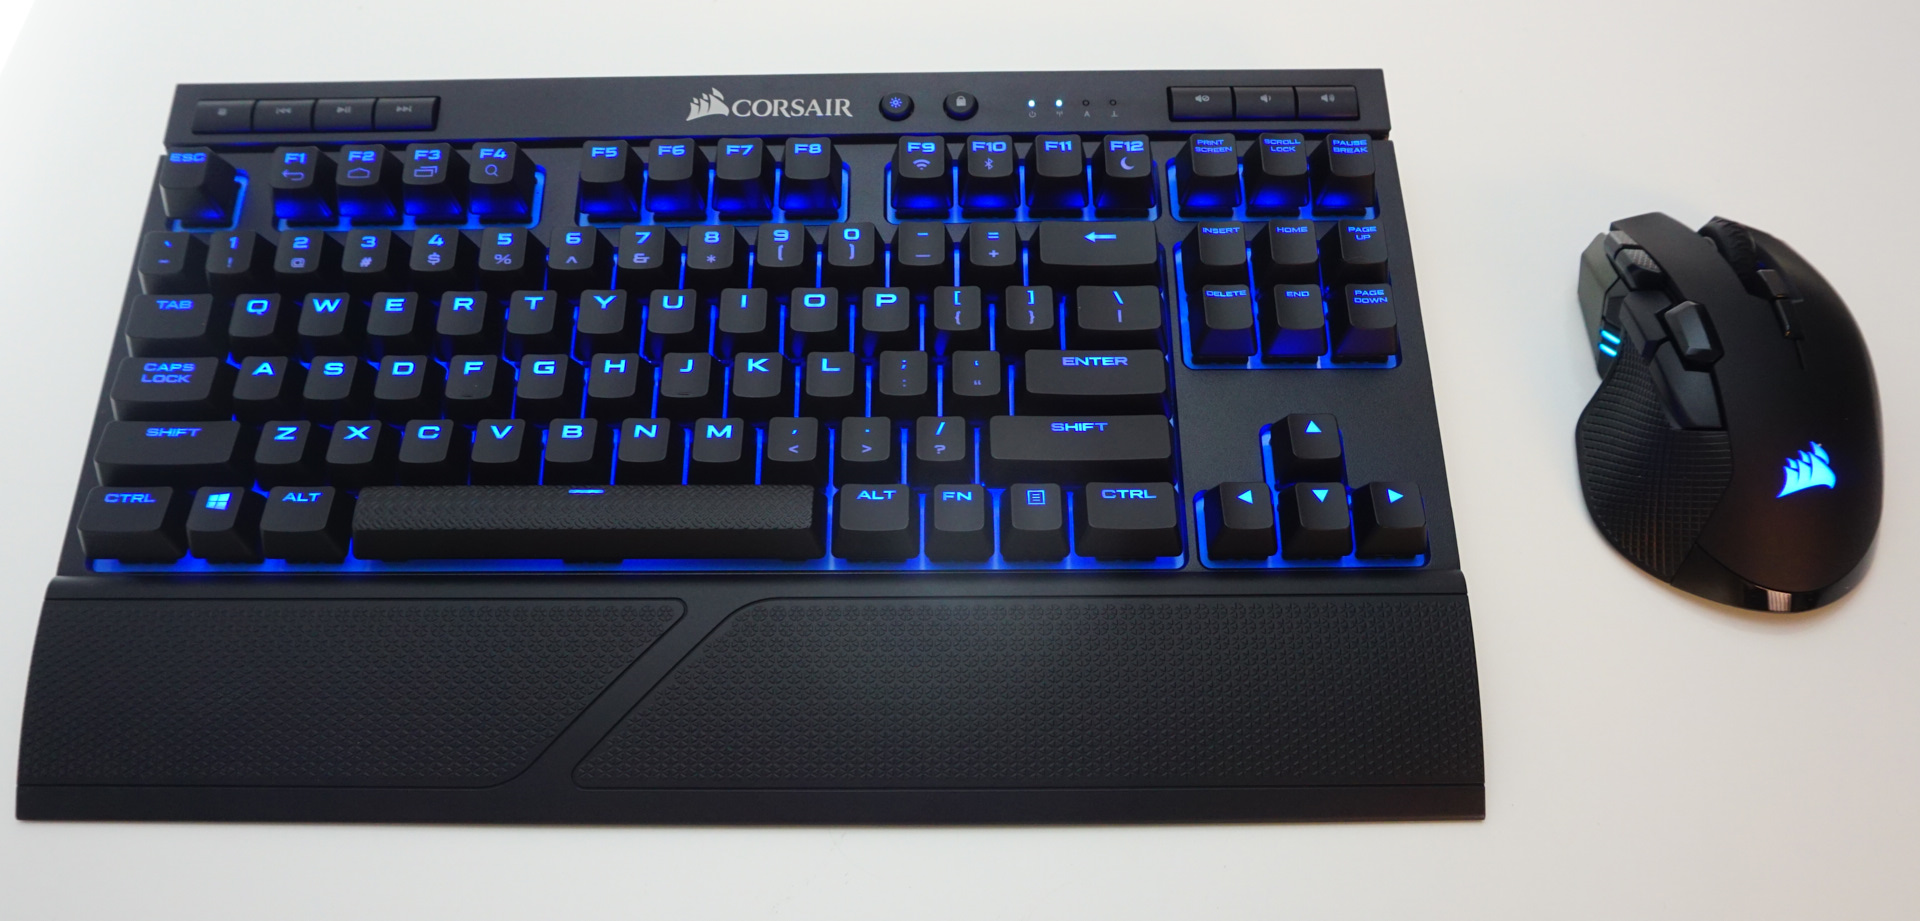 Final Words And Conclusion The Corsair K63 Wireless Mechanical Keyboard Review Pc Gaming Untethered